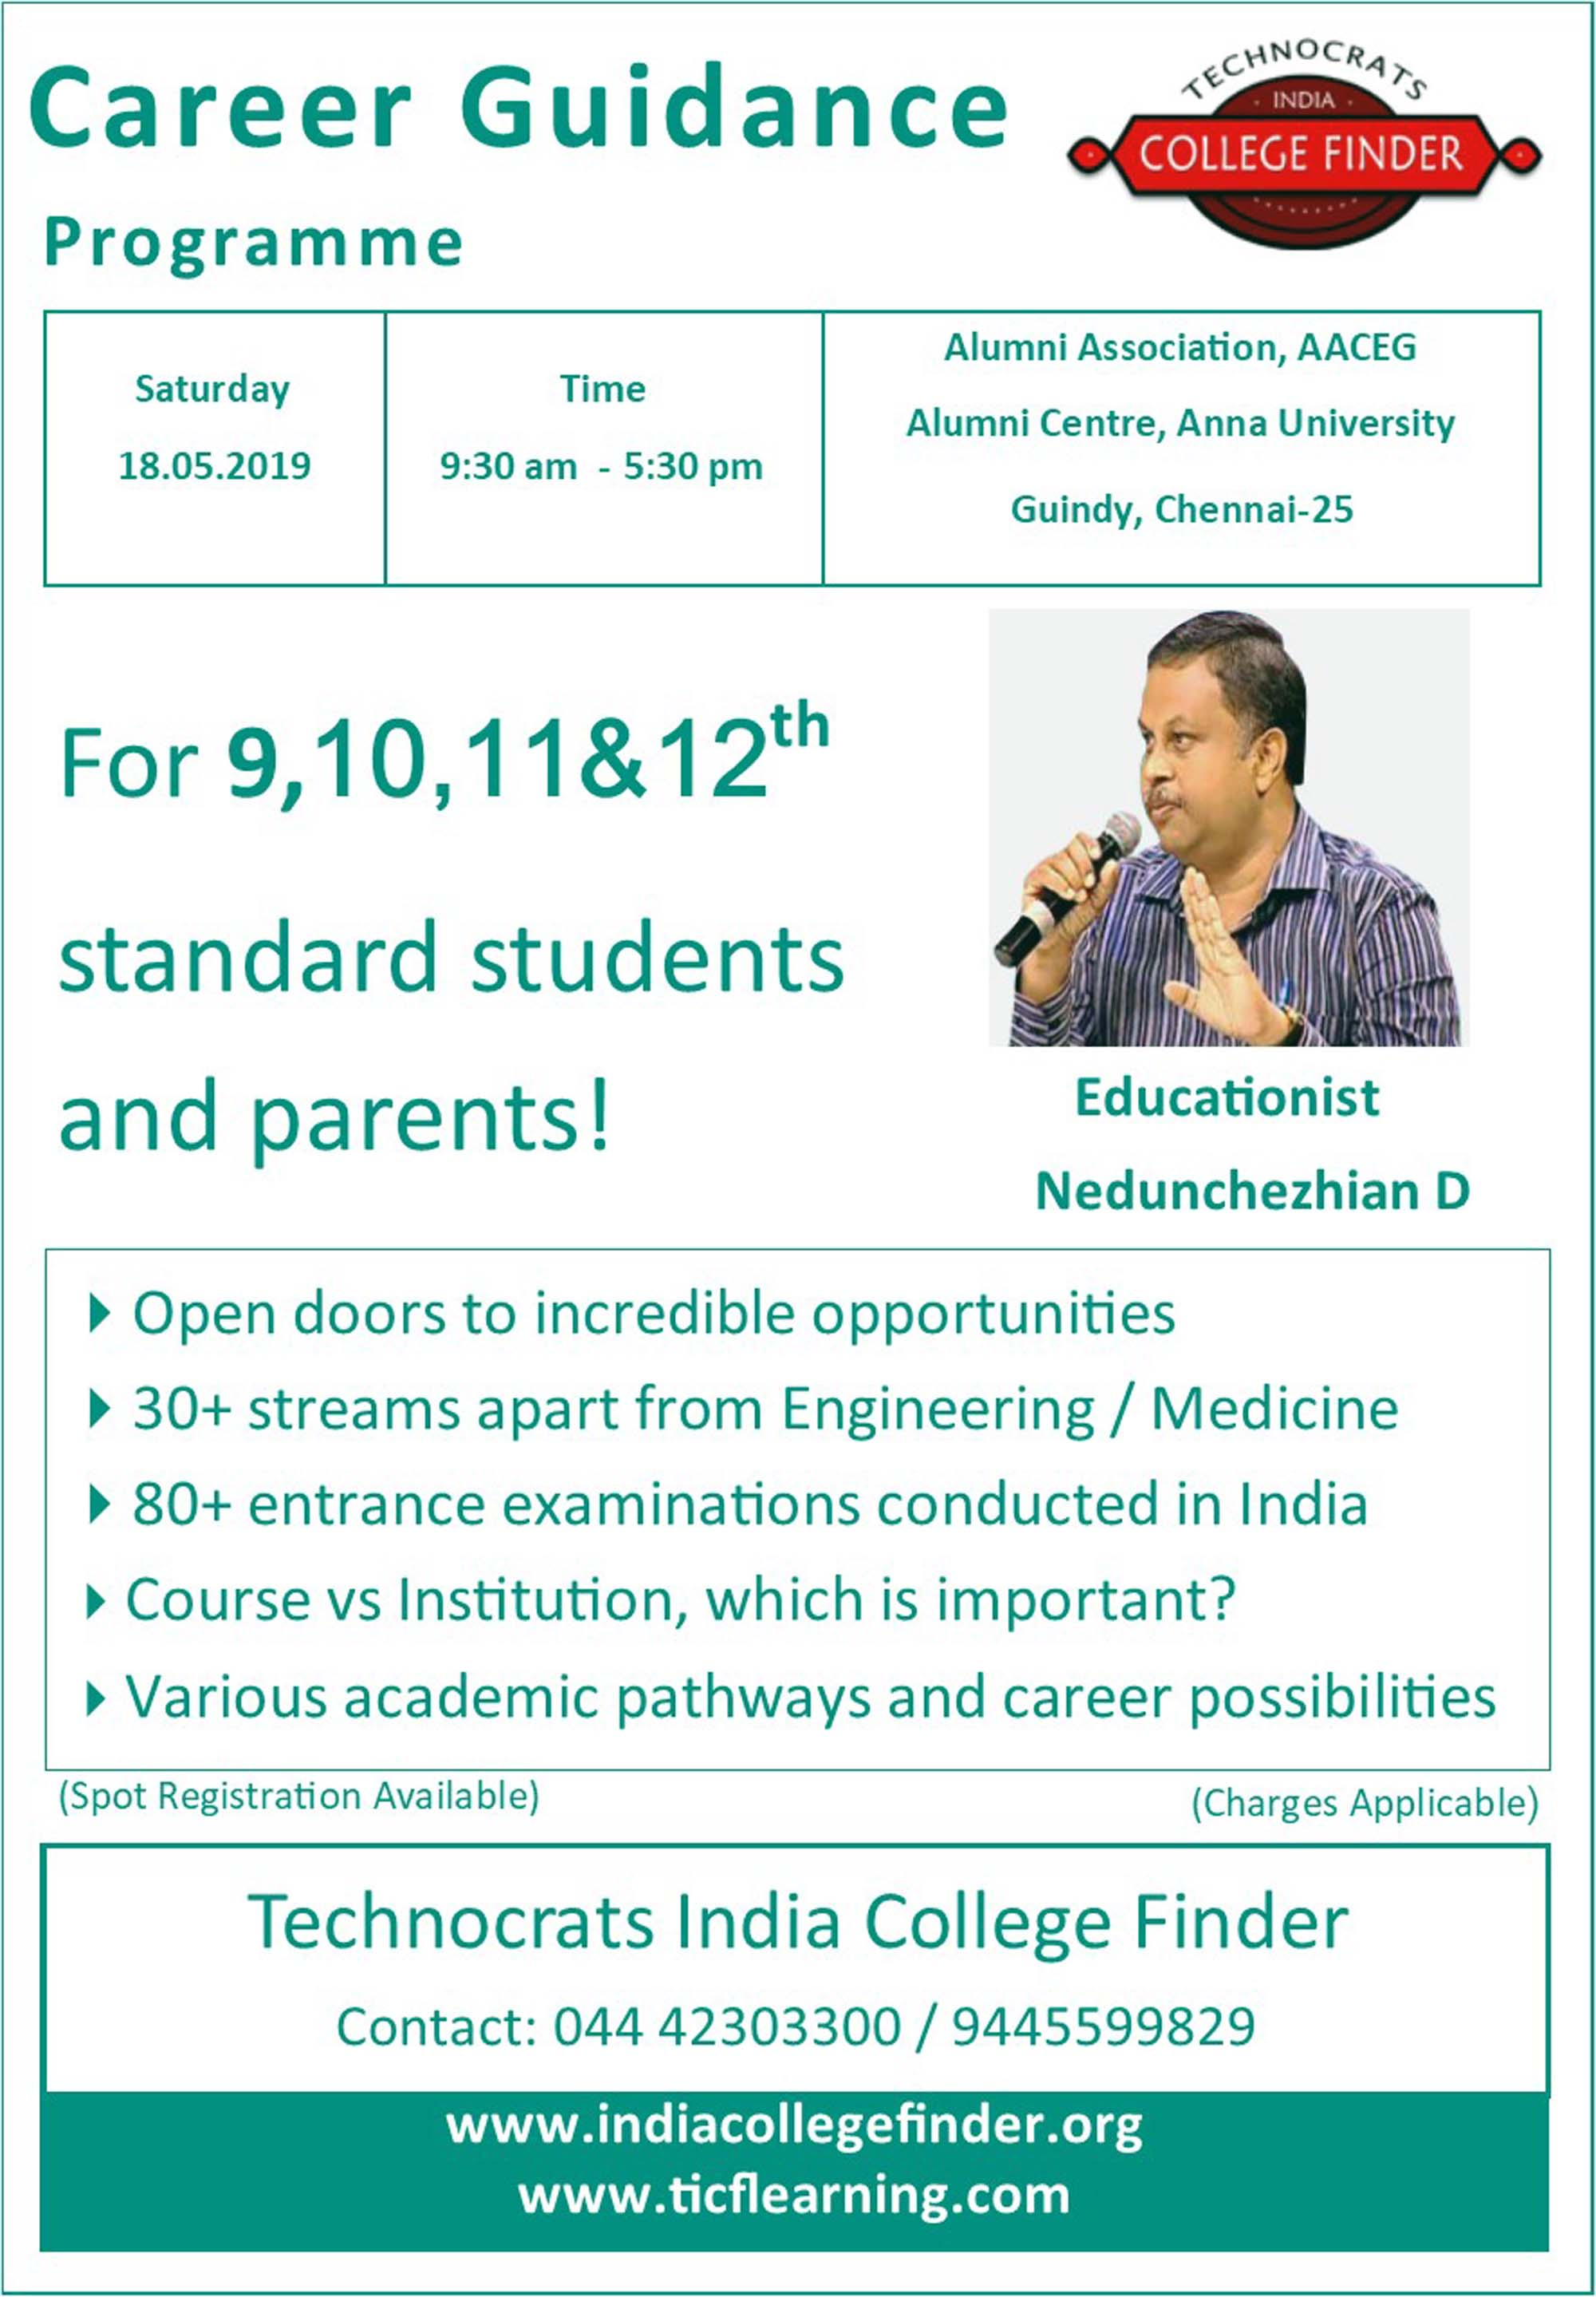 Career Guidance Programme for 9th to 12th standard students and parents by Technocrats India College Finder